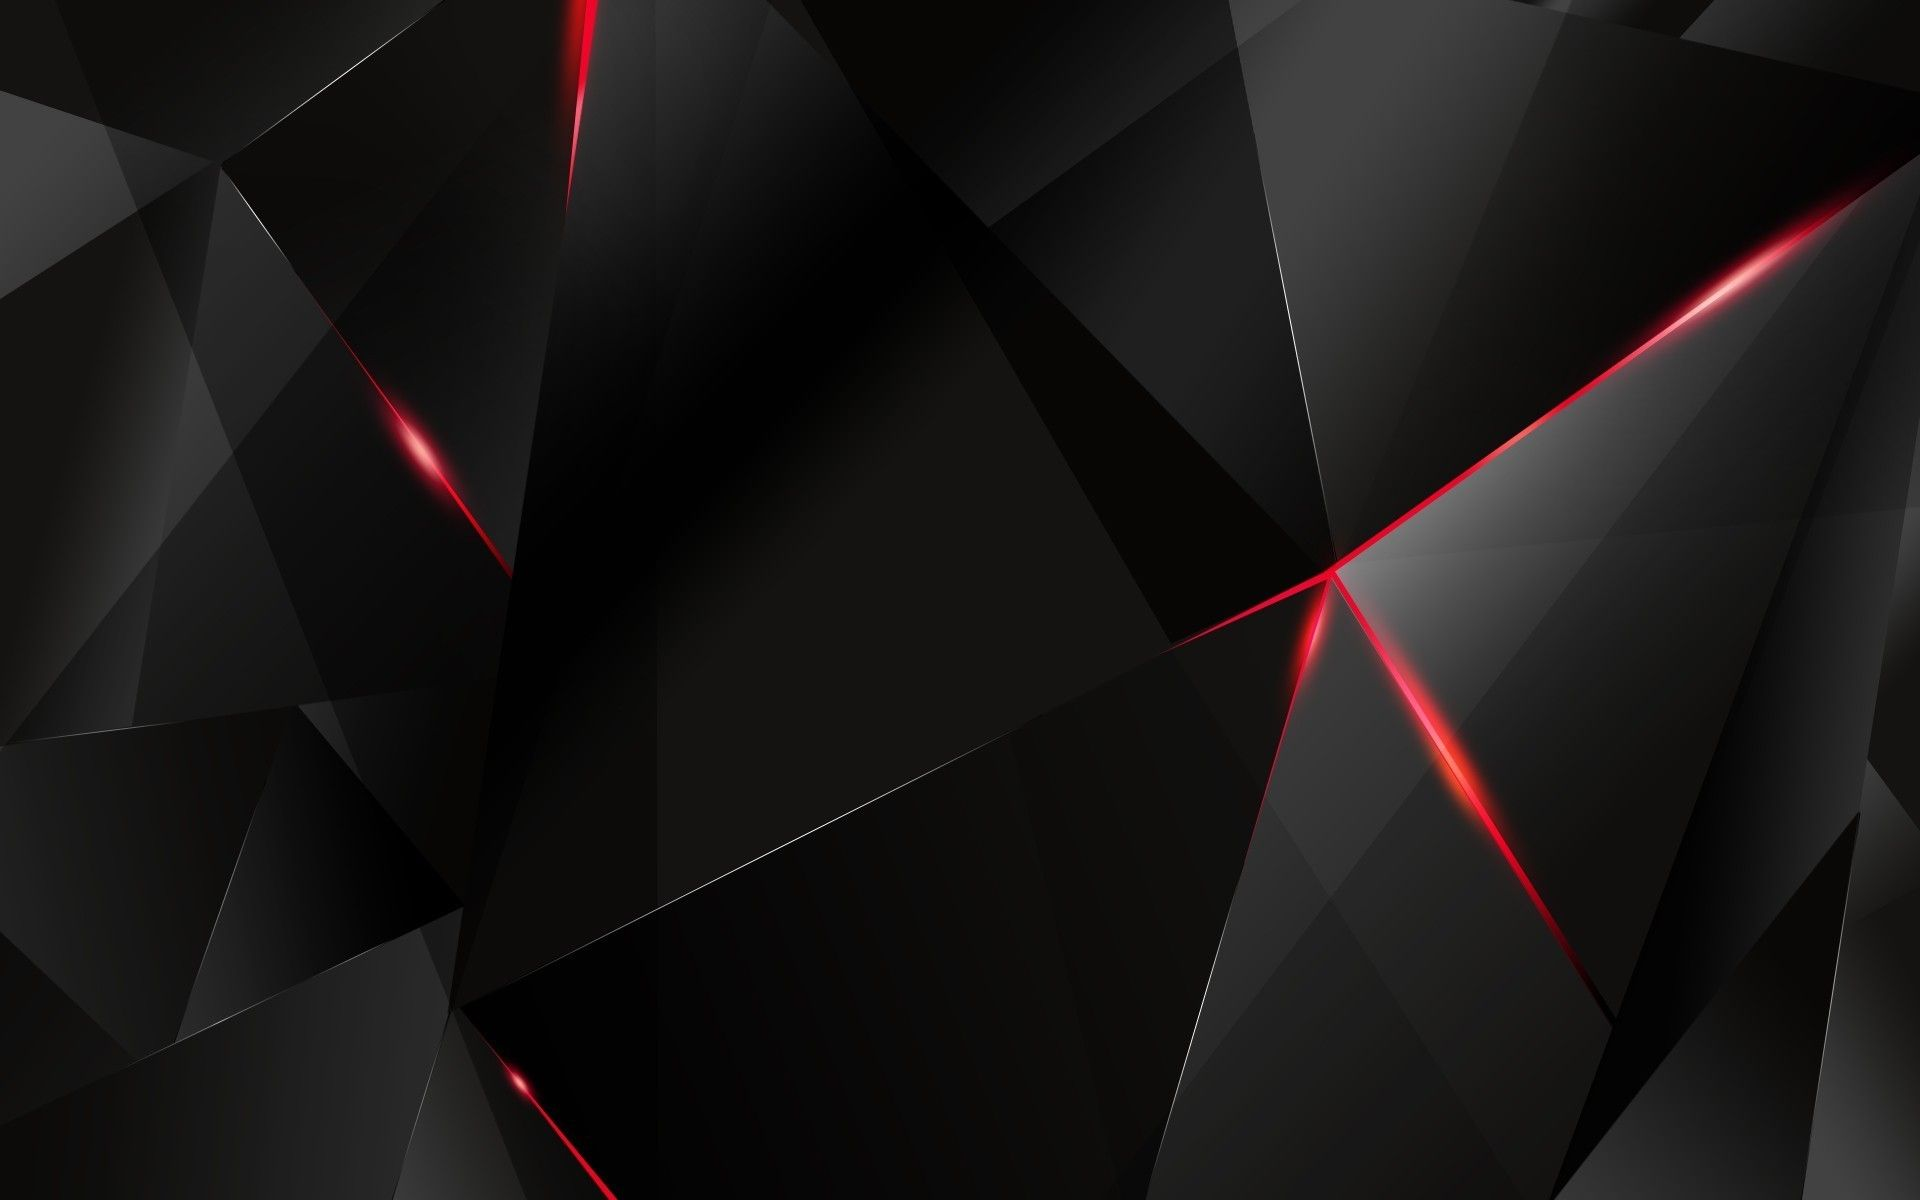 Awesome Black and Red Wallpapers - WallpaperSafari